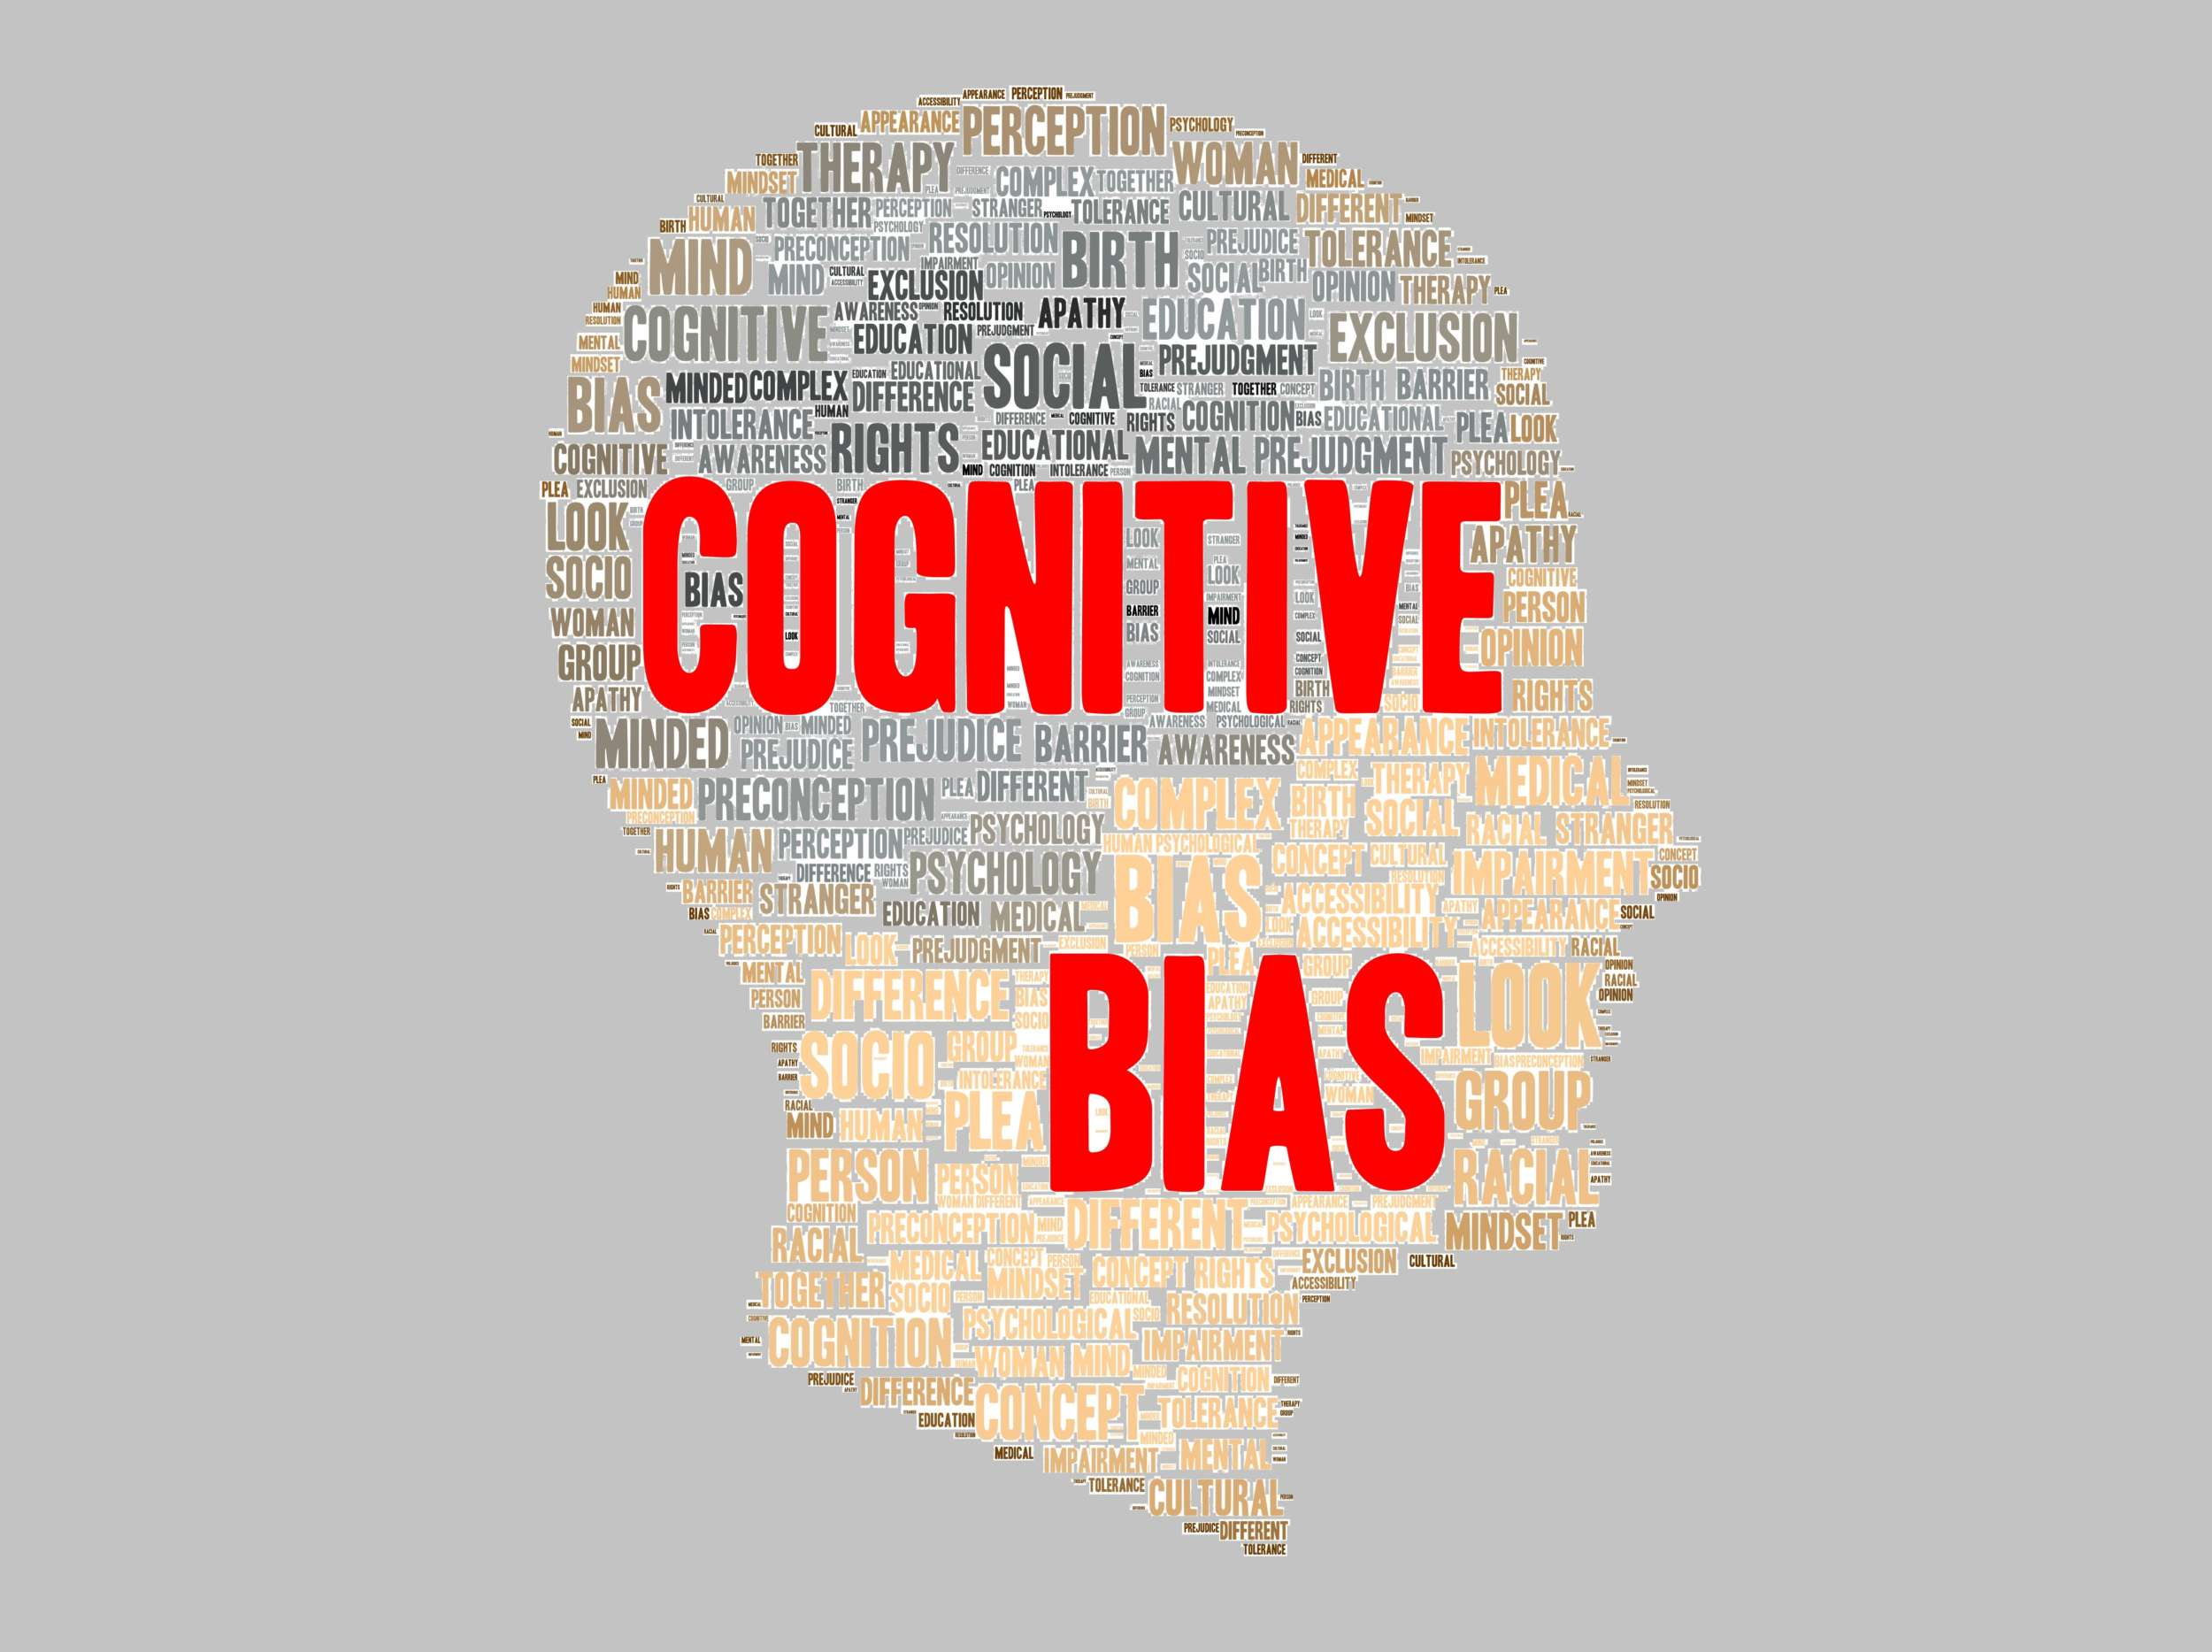 Cognitive Bias - Examples, List of Top 10 Types of Biases